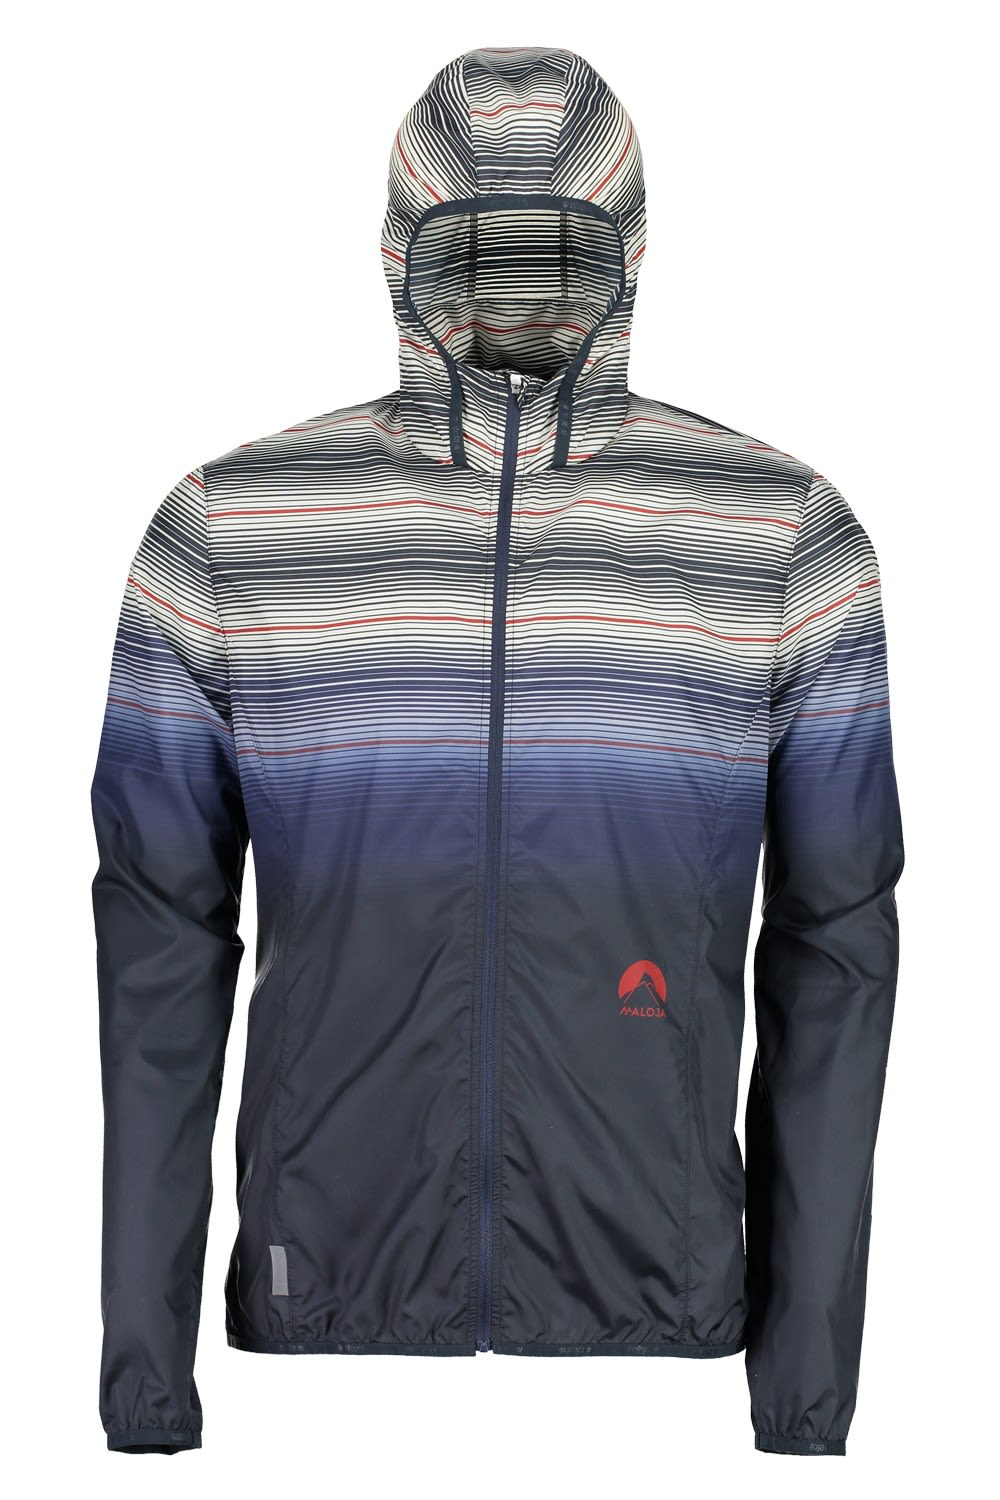 Maloja Joakimm. Jacke Blau, Male Isolationsjacke, XL